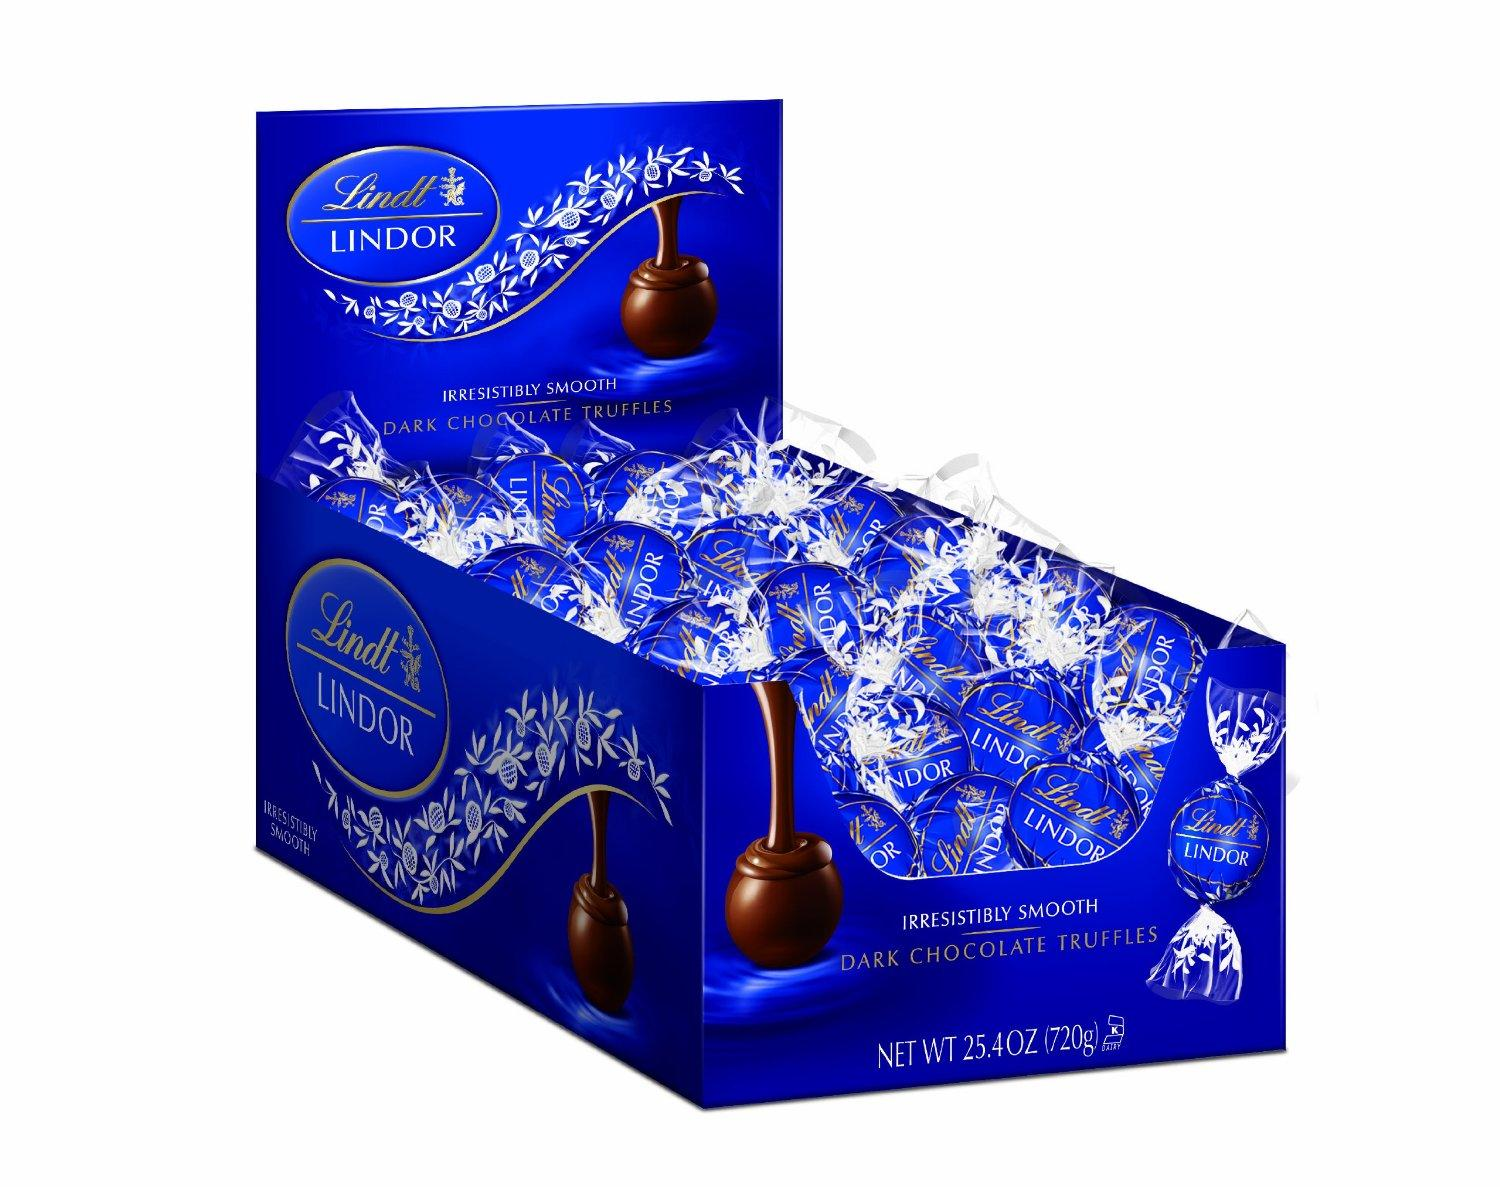 Lindt LINDOR Black Chocolate Truffles, 60 Count Box